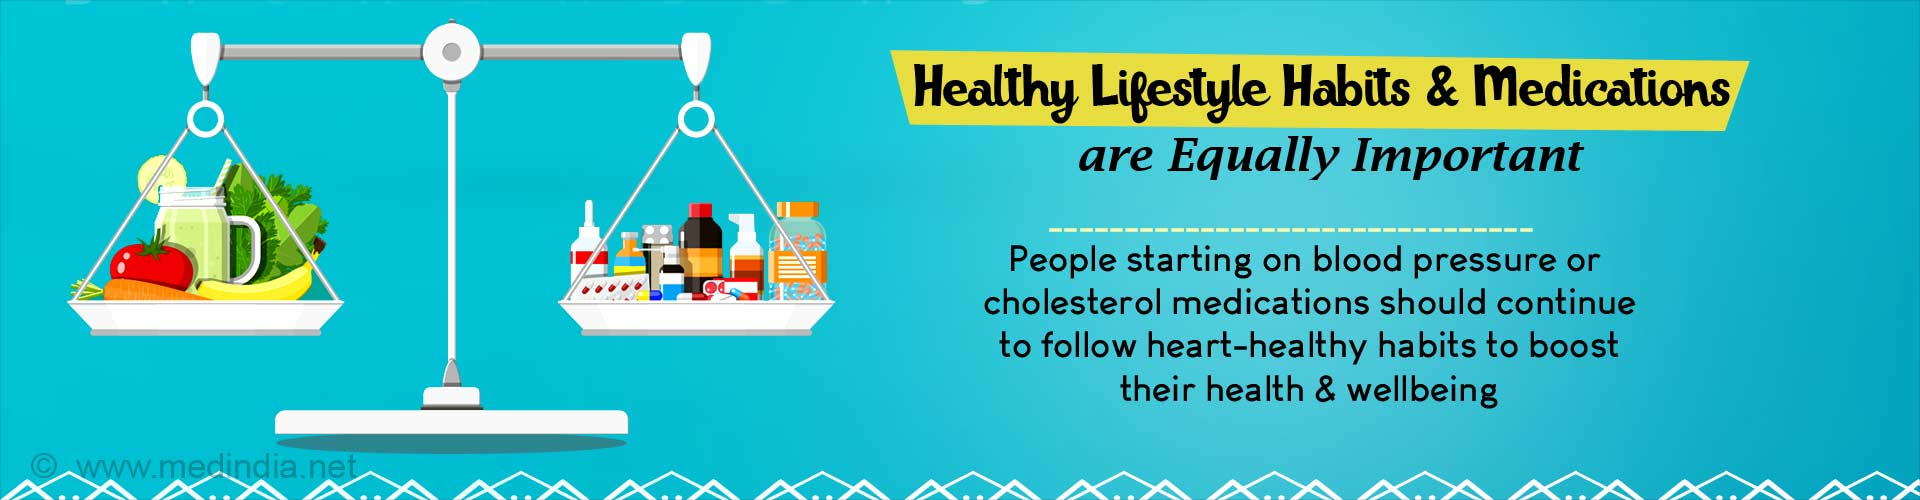 Healthy Habits Should Go Hand in Hand With Blood Pressure, Cholesterol Medications